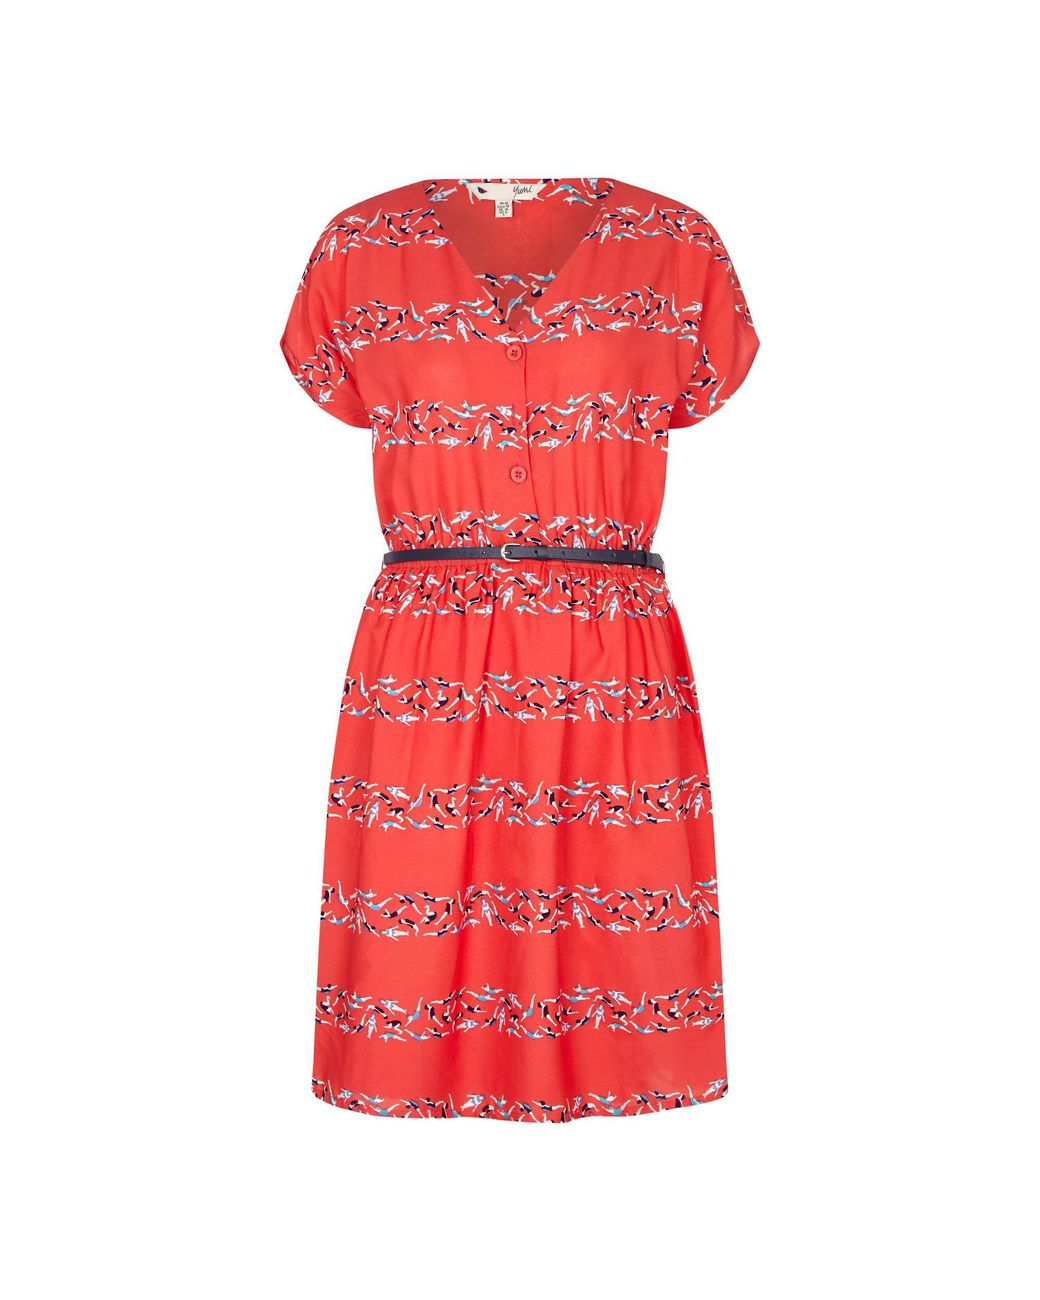 6364f0a631 Yumi' Red Cold Shoulder Swimmer 'aayat' Print Dress in Red - Lyst